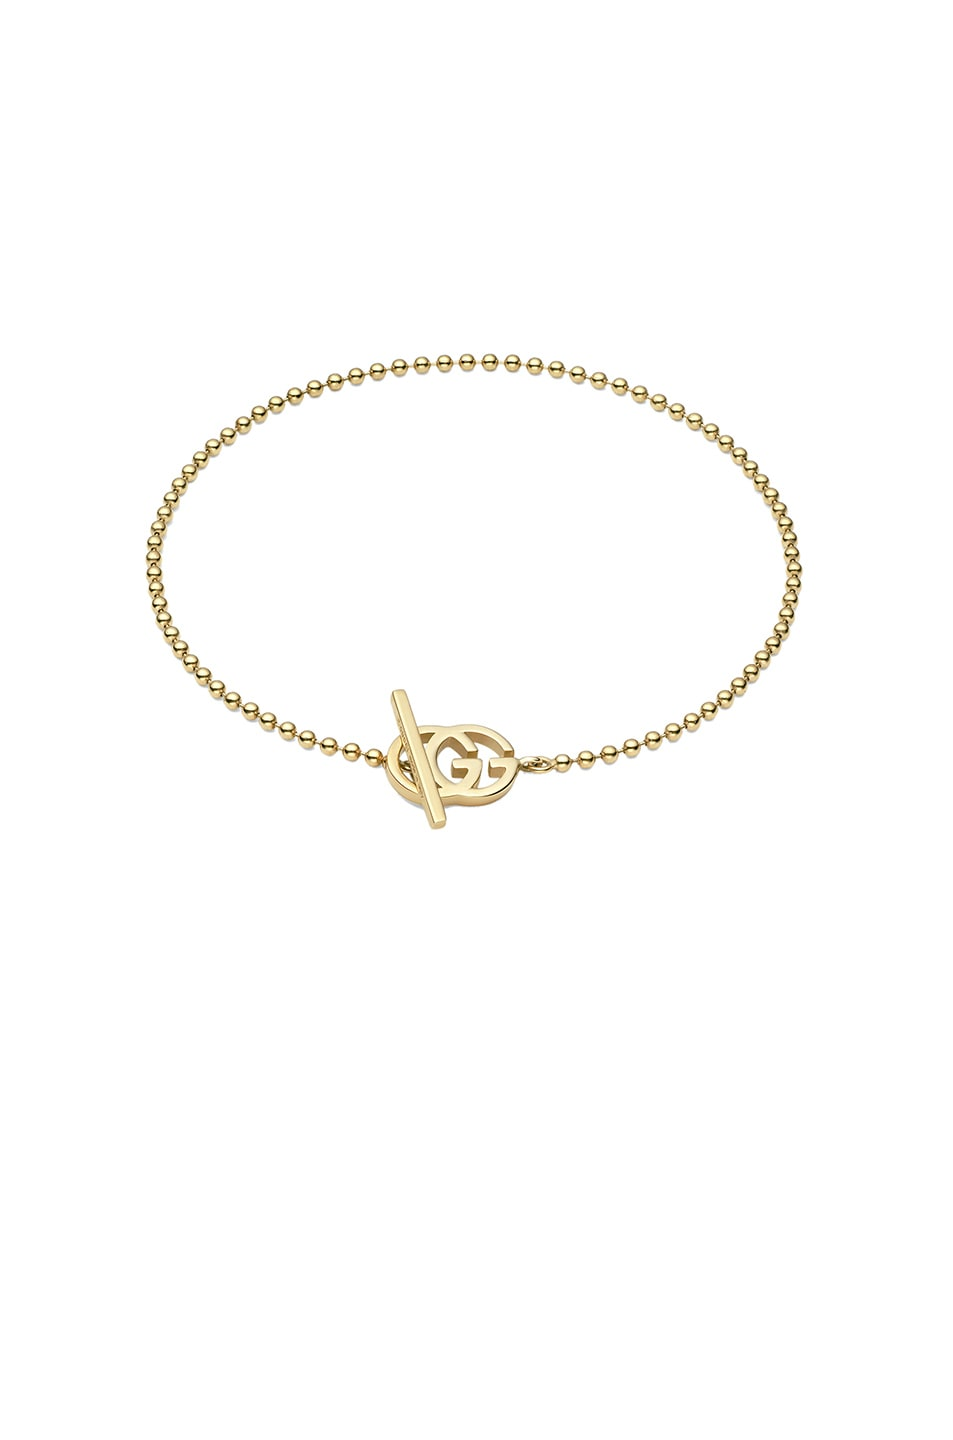 b121848fd Image 1 of Gucci Running G Bracelet in 18KT Yellow Gold